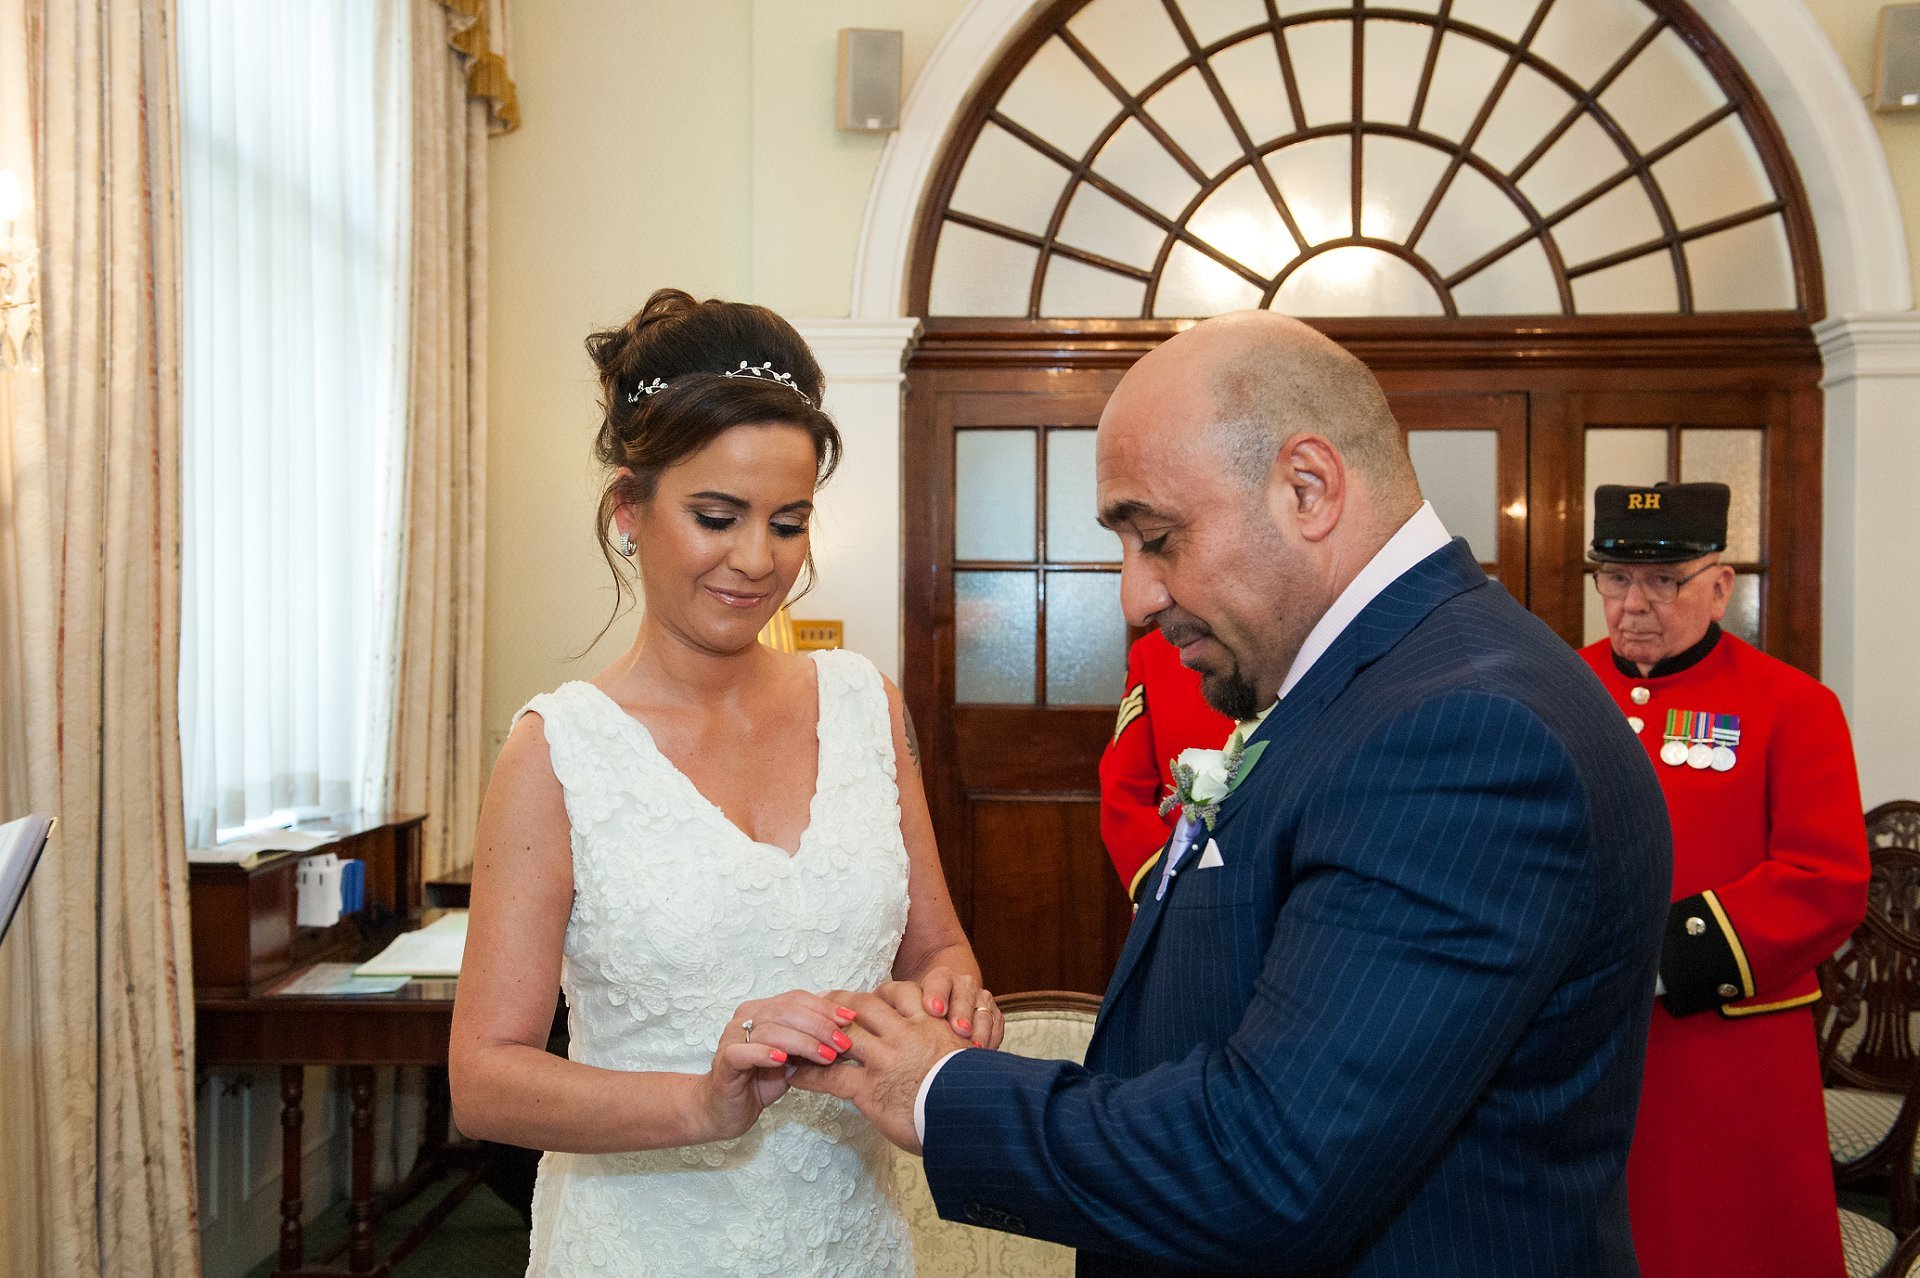 Bride places ring on groom's finger during wedding ceremony at Chelsea Registry Office